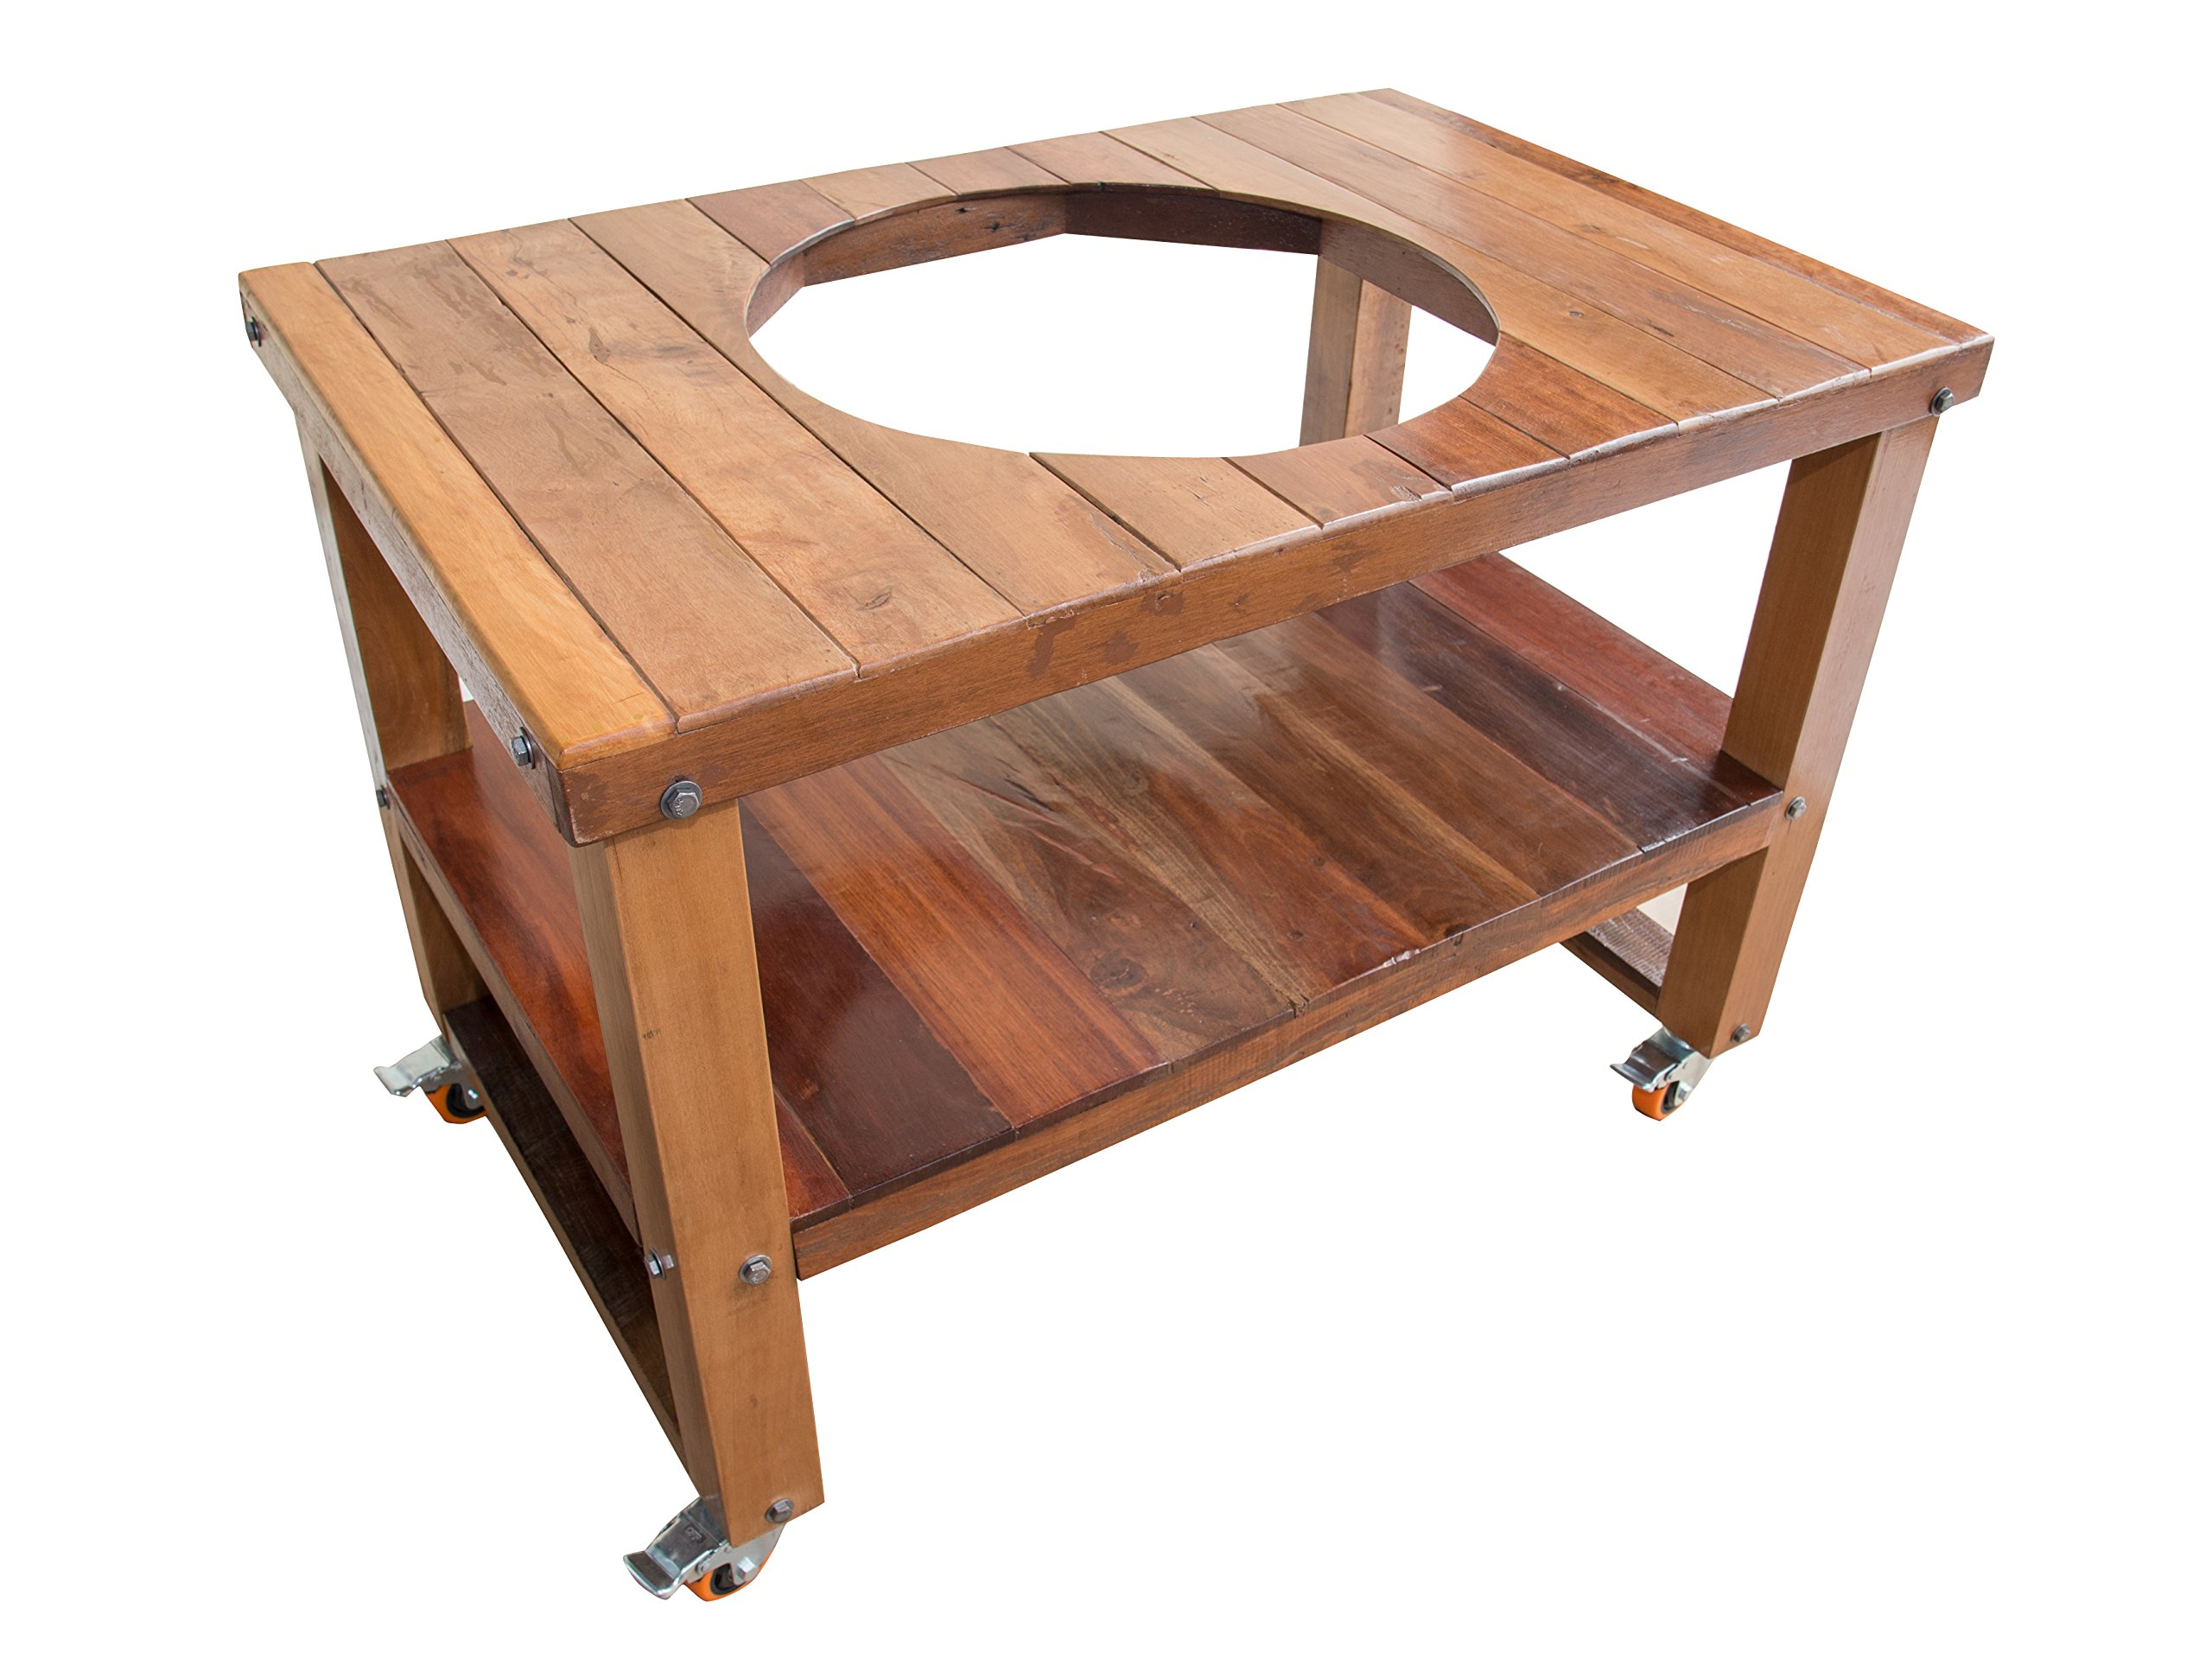 Barbecue Hardwood Tables ''Center Hole'' (21 inch, Indoor, Outdoor, Big Green Egg, Fit for Kamado Joe, Party, BBQs and Everyday Use)